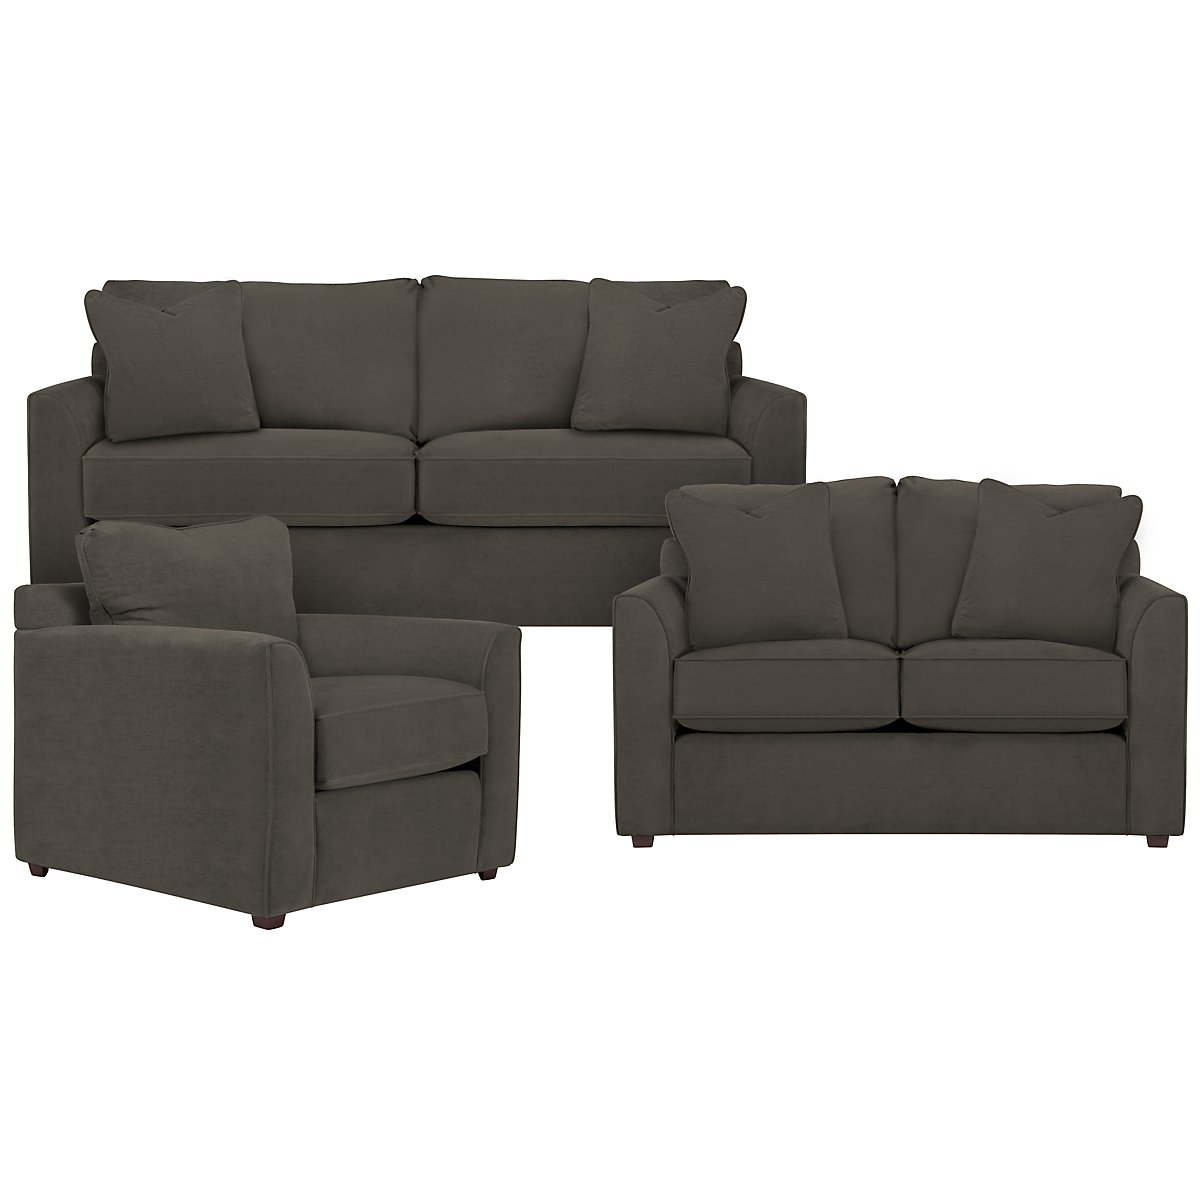 Express3 Dark Gray Microfiber Living Room